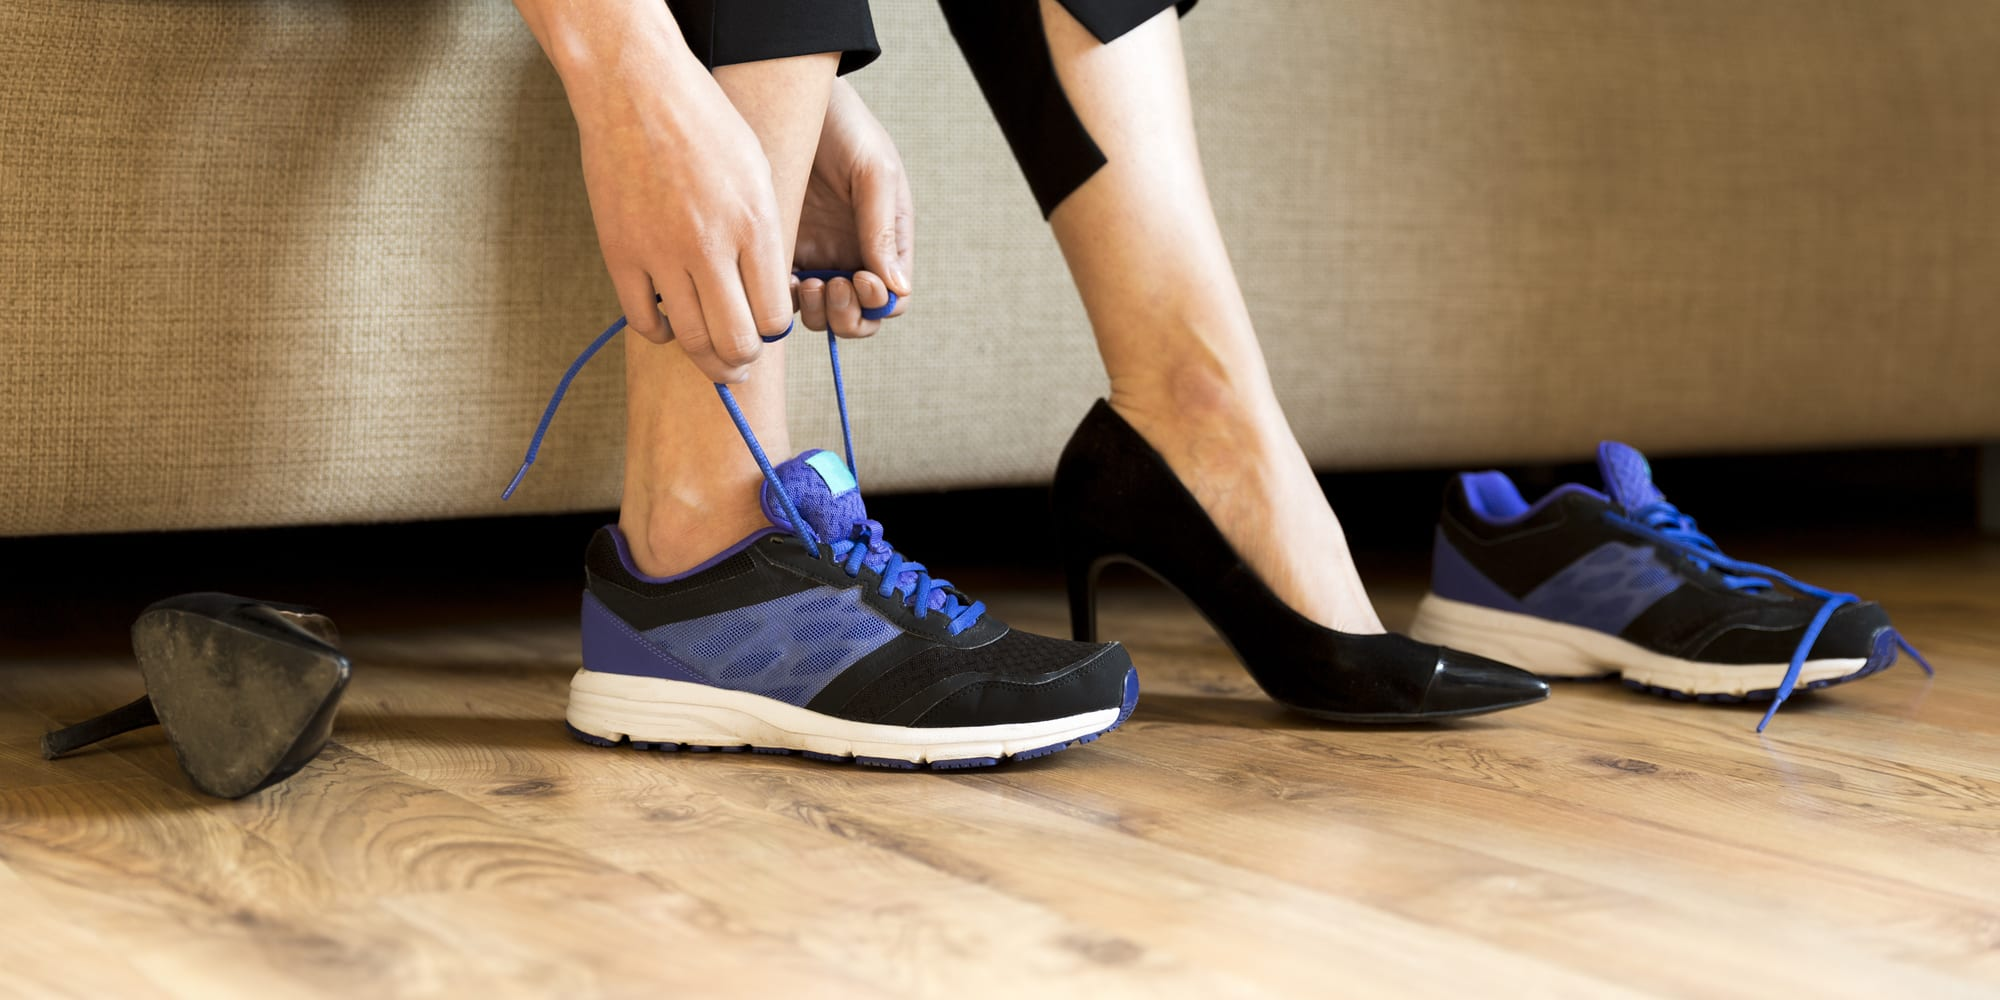 Transitional Workout Gear You Can Wear to Work